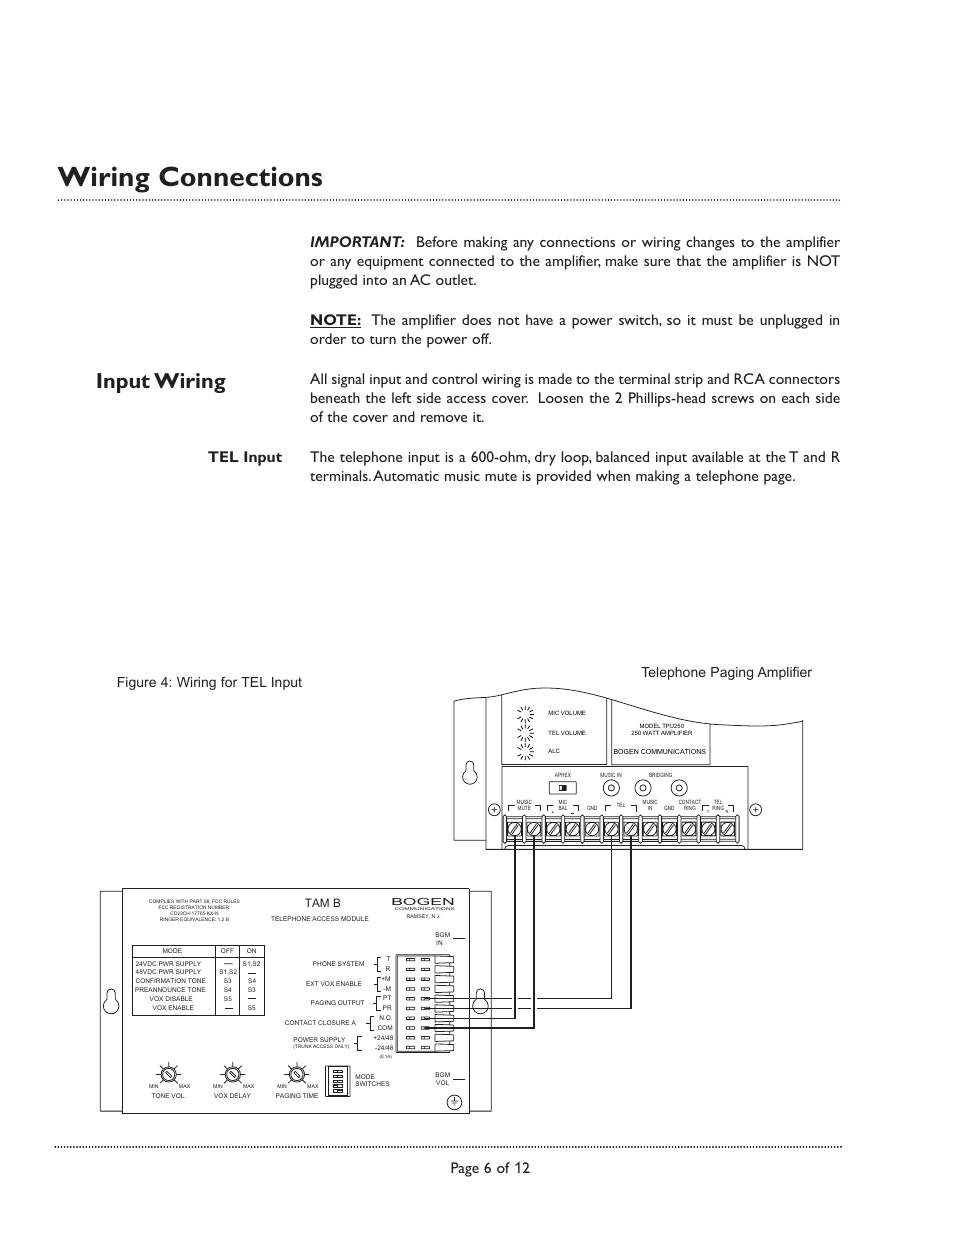 Wiring connections, Input wiring, Page 6 of 12 | Bogen TPU250 User Manual |  Page 6 / 12